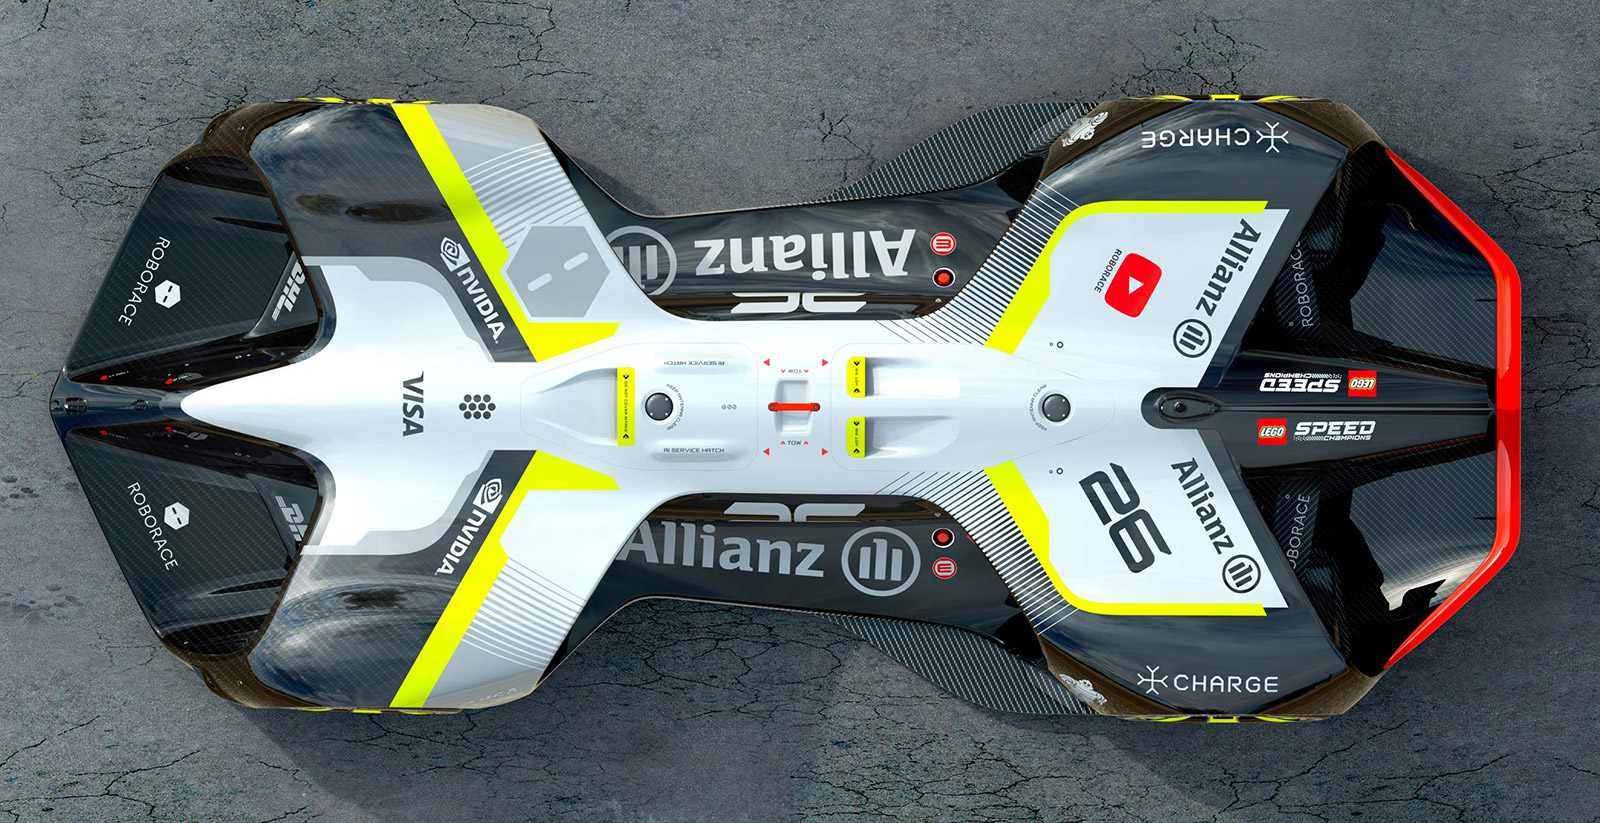 Roborace Reveals Their All-Electric Self-Driving Racecar